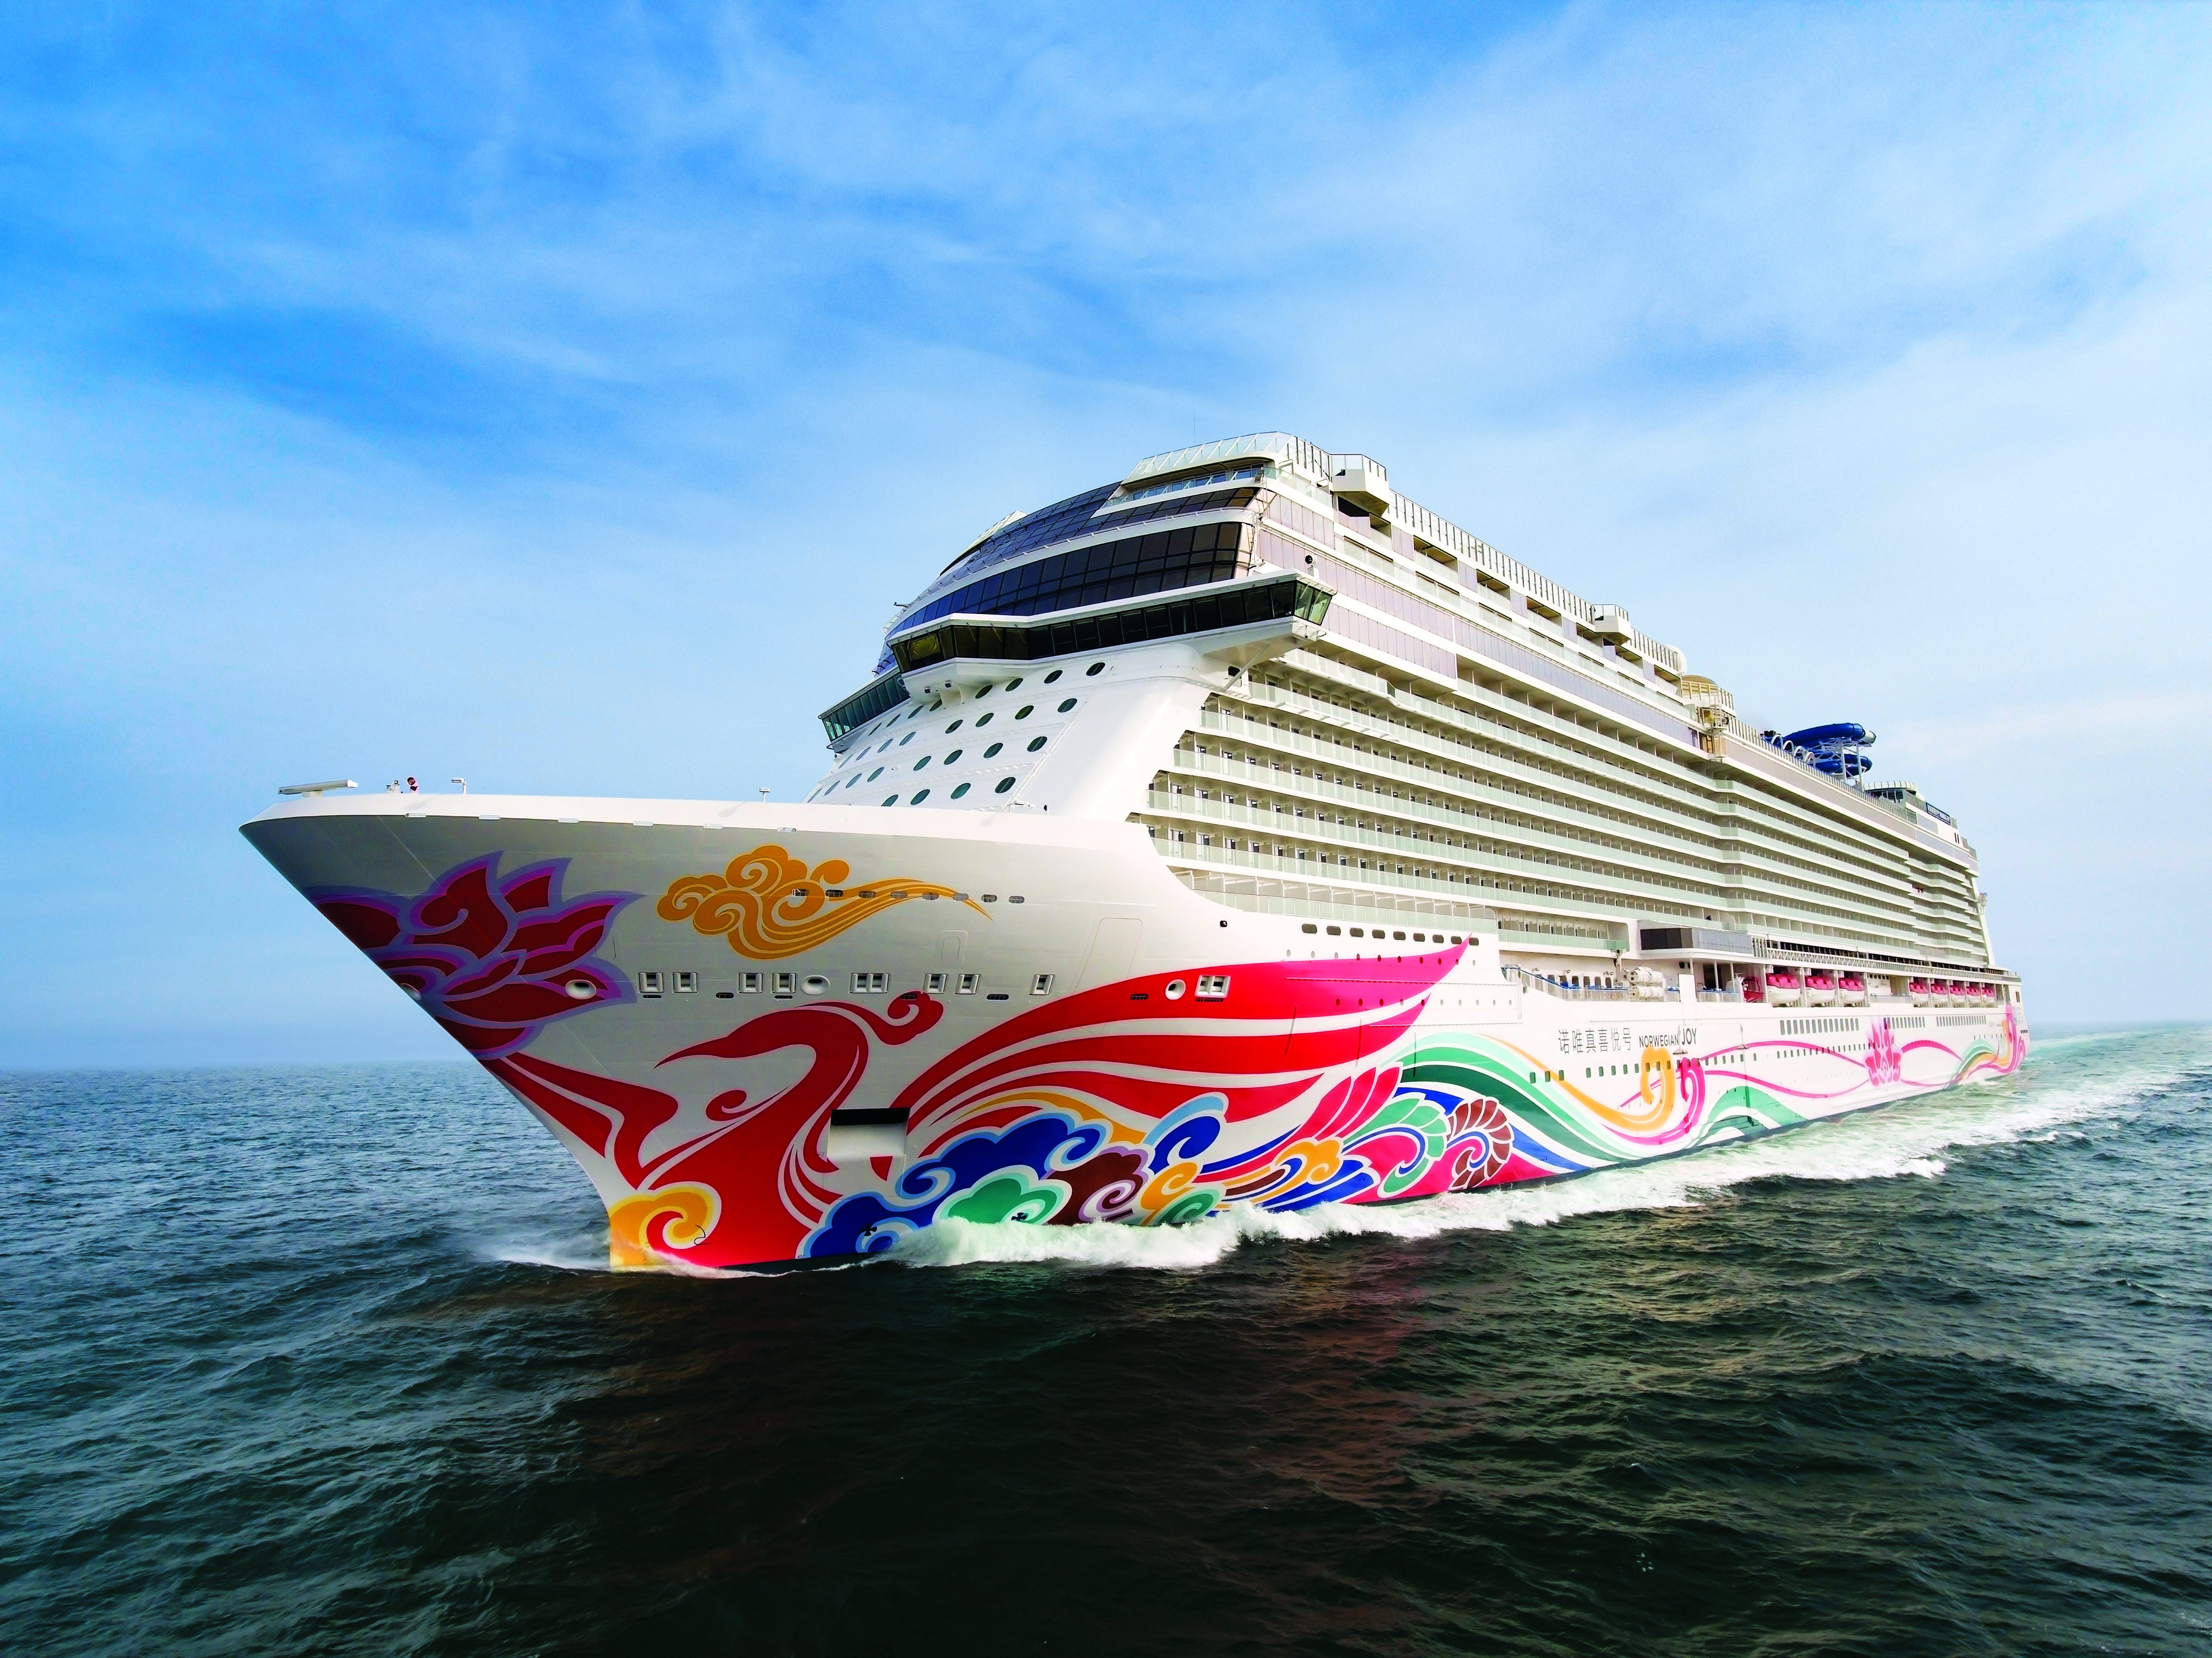 New Orleans to get its largest cruise ship ever